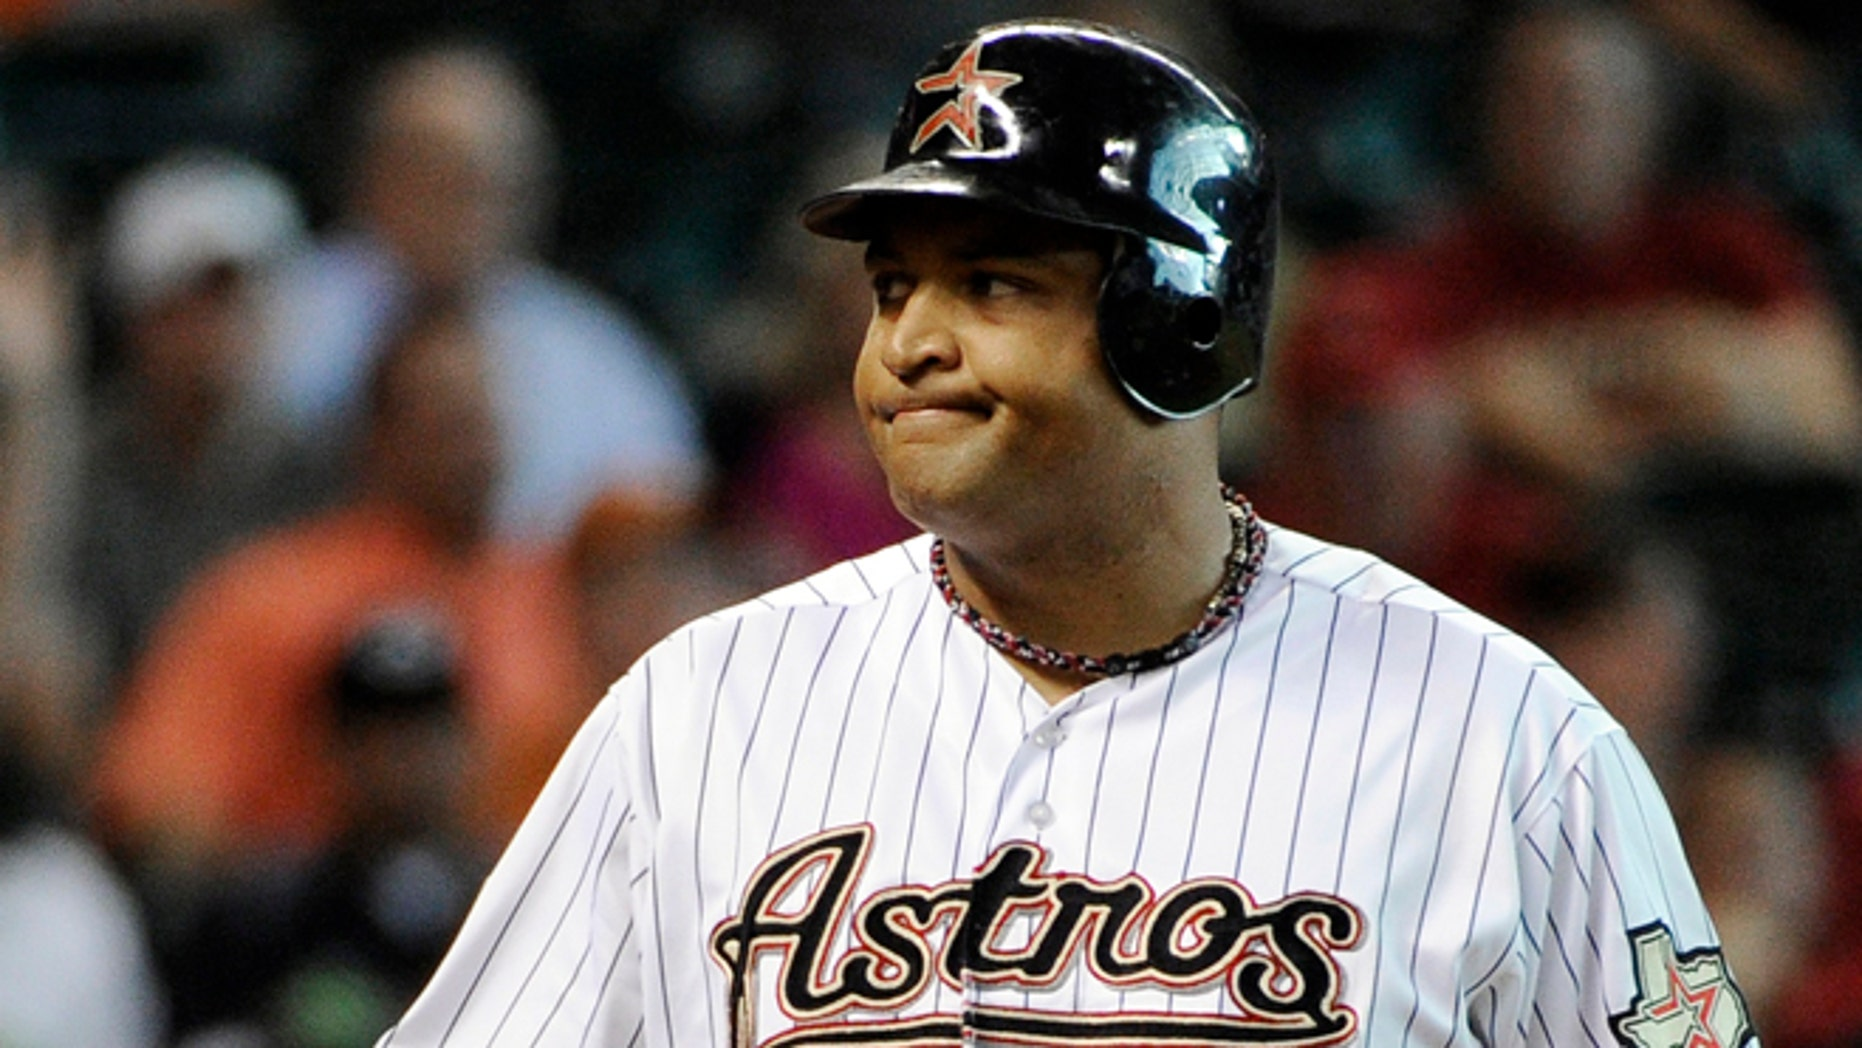 Houston Astros' Carlos Lee will not be traded to the Dodgers.